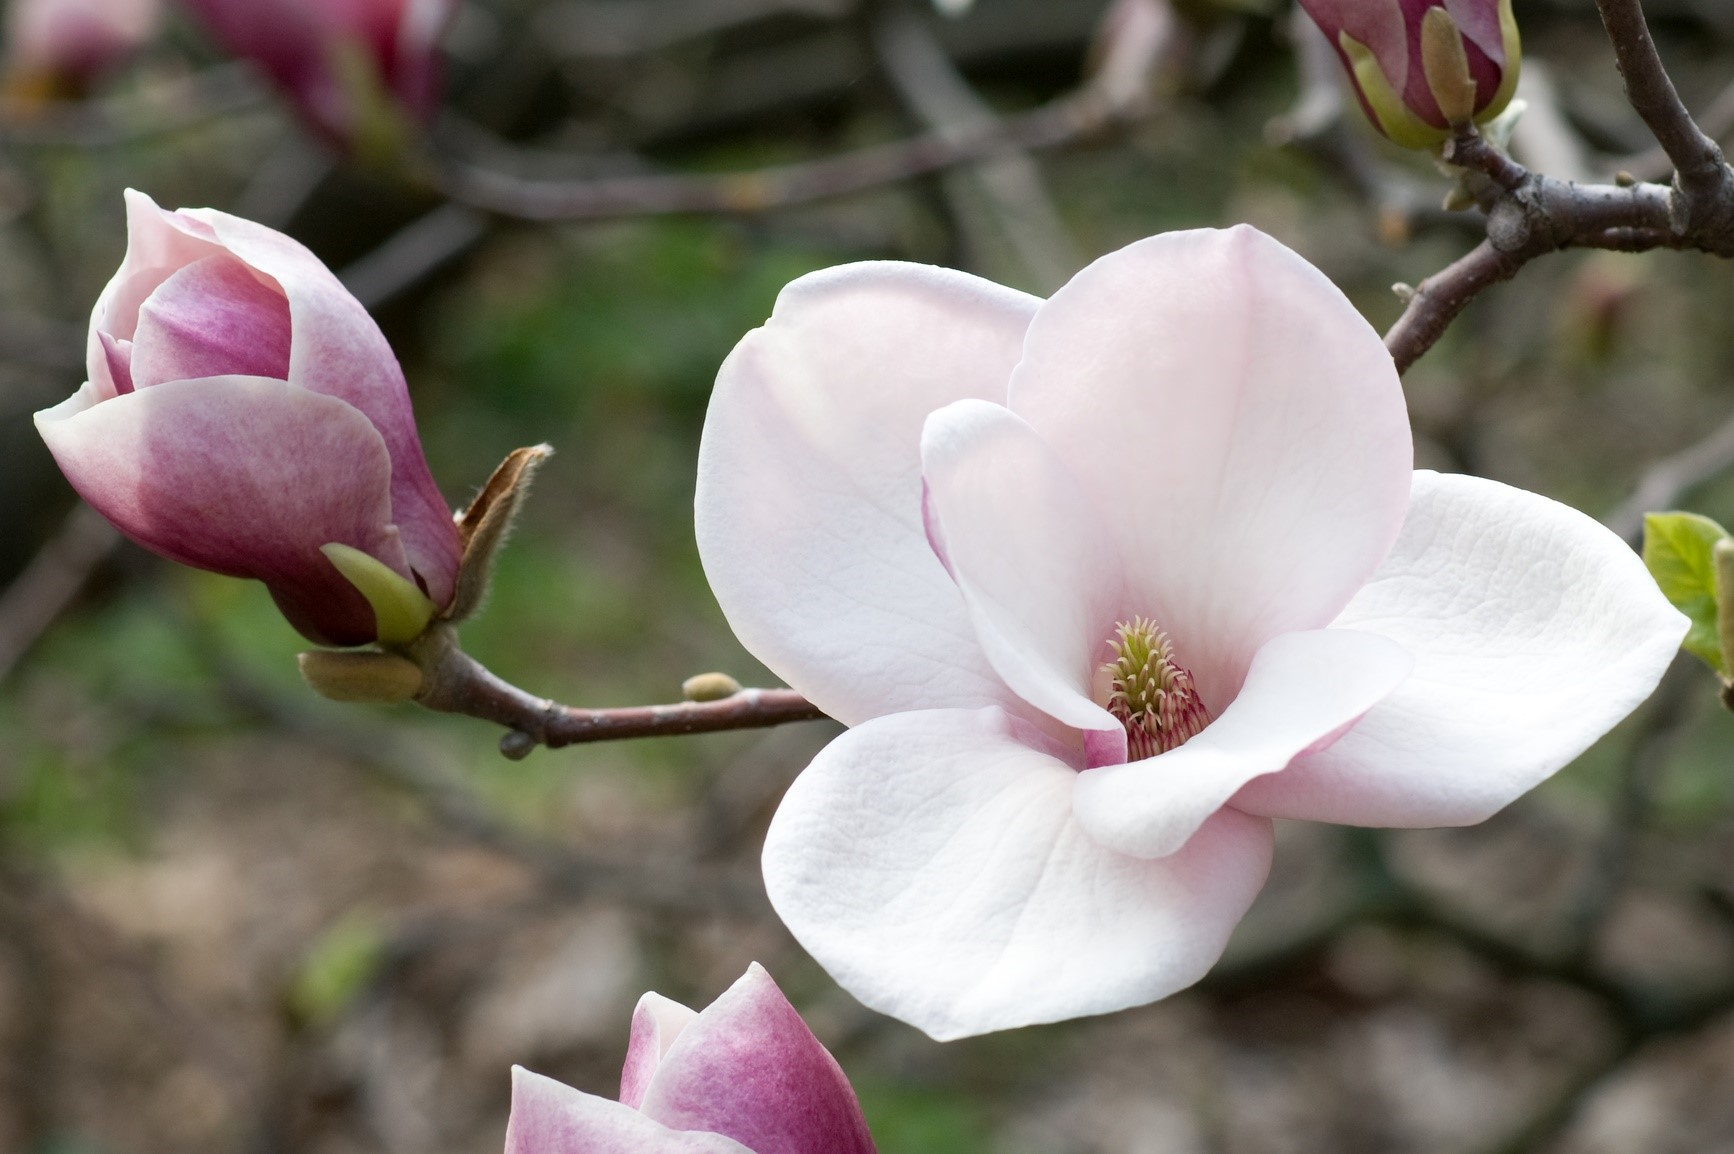 High Resolution Wallpaper | Magnolia 1734x1154 px